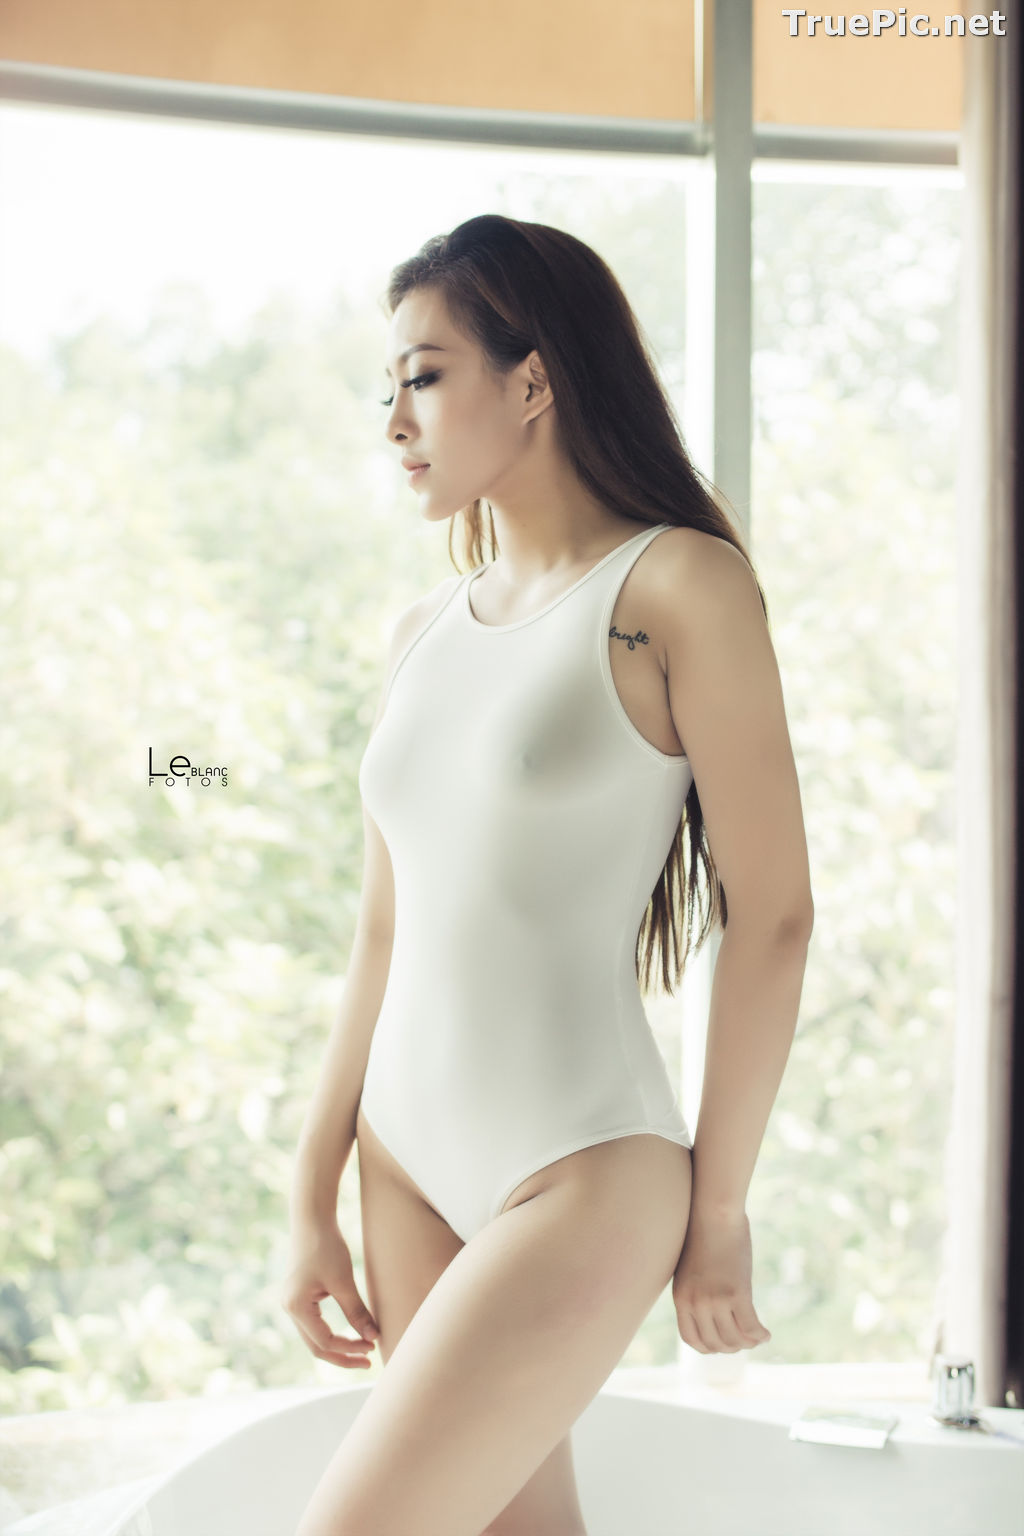 Image Vietnamese Beauties With Lingerie and Bikini – Photo by Le Blanc Studio #14 - TruePic.net - Picture-4